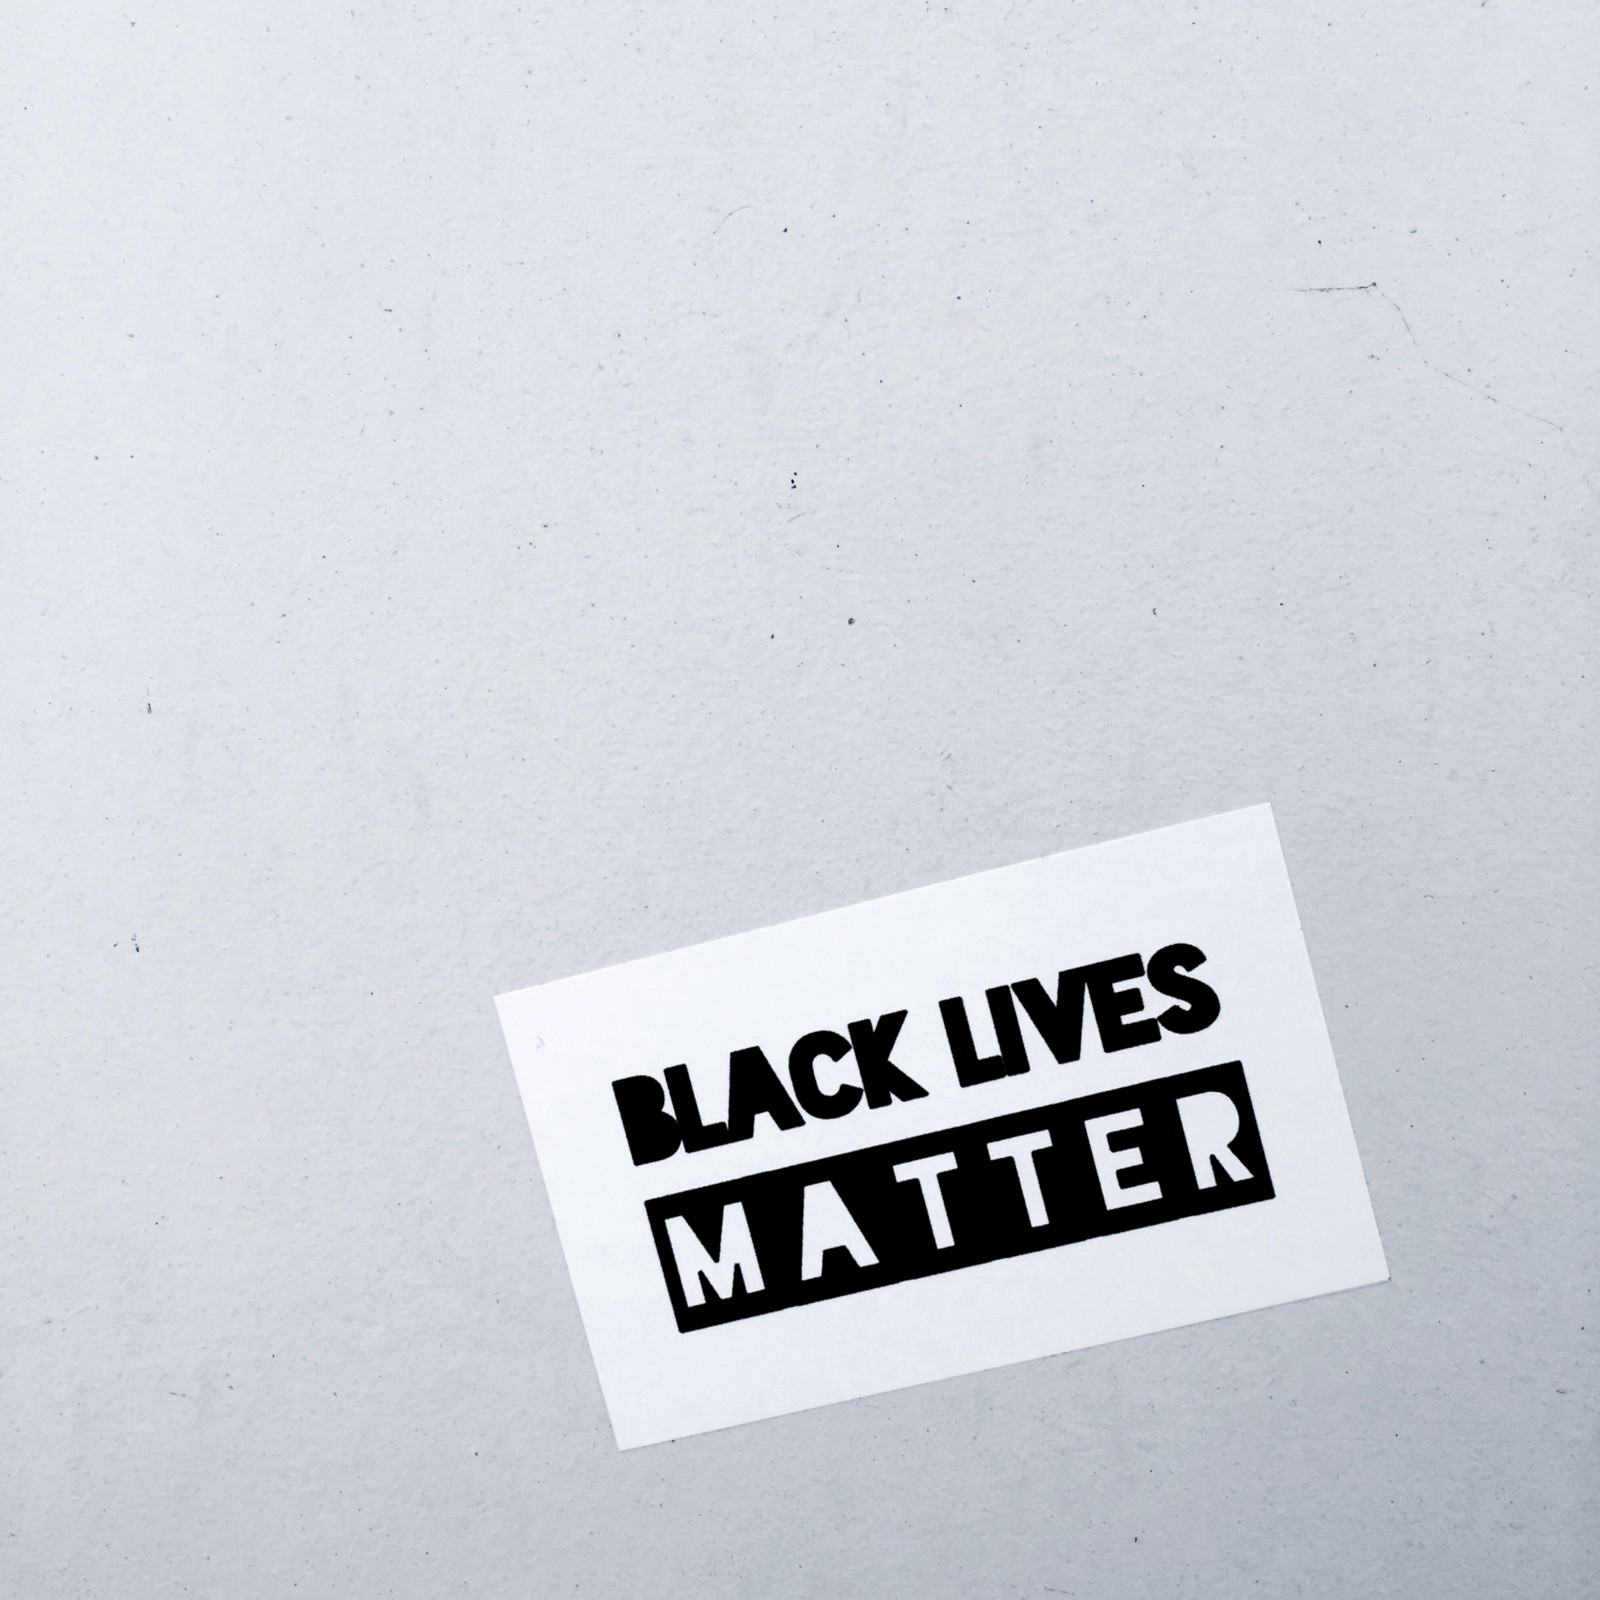 Black Pro S Pros And Cons Of Black Lives Matters Carly Pabst Medium